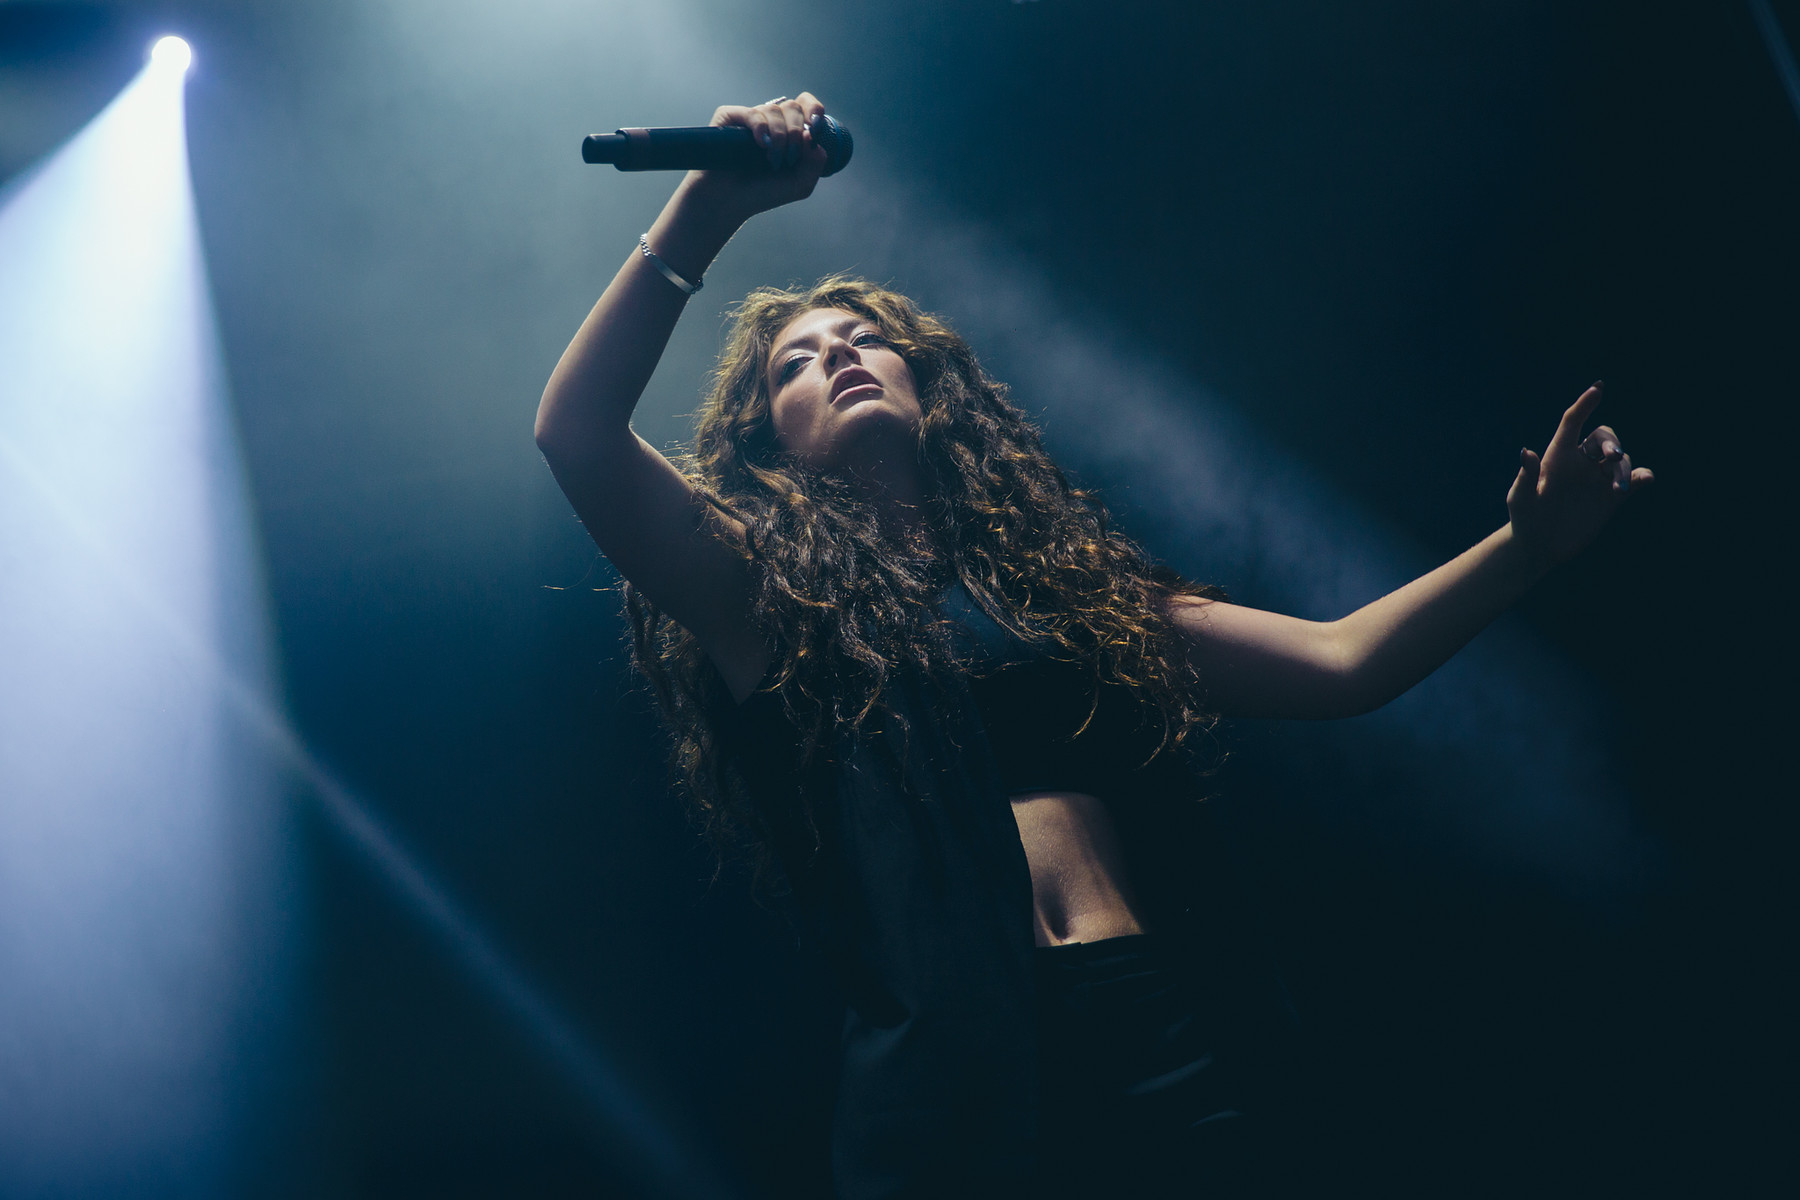 lorde_austin_city_limits01_website_image_nfpg_wuxga.jpg